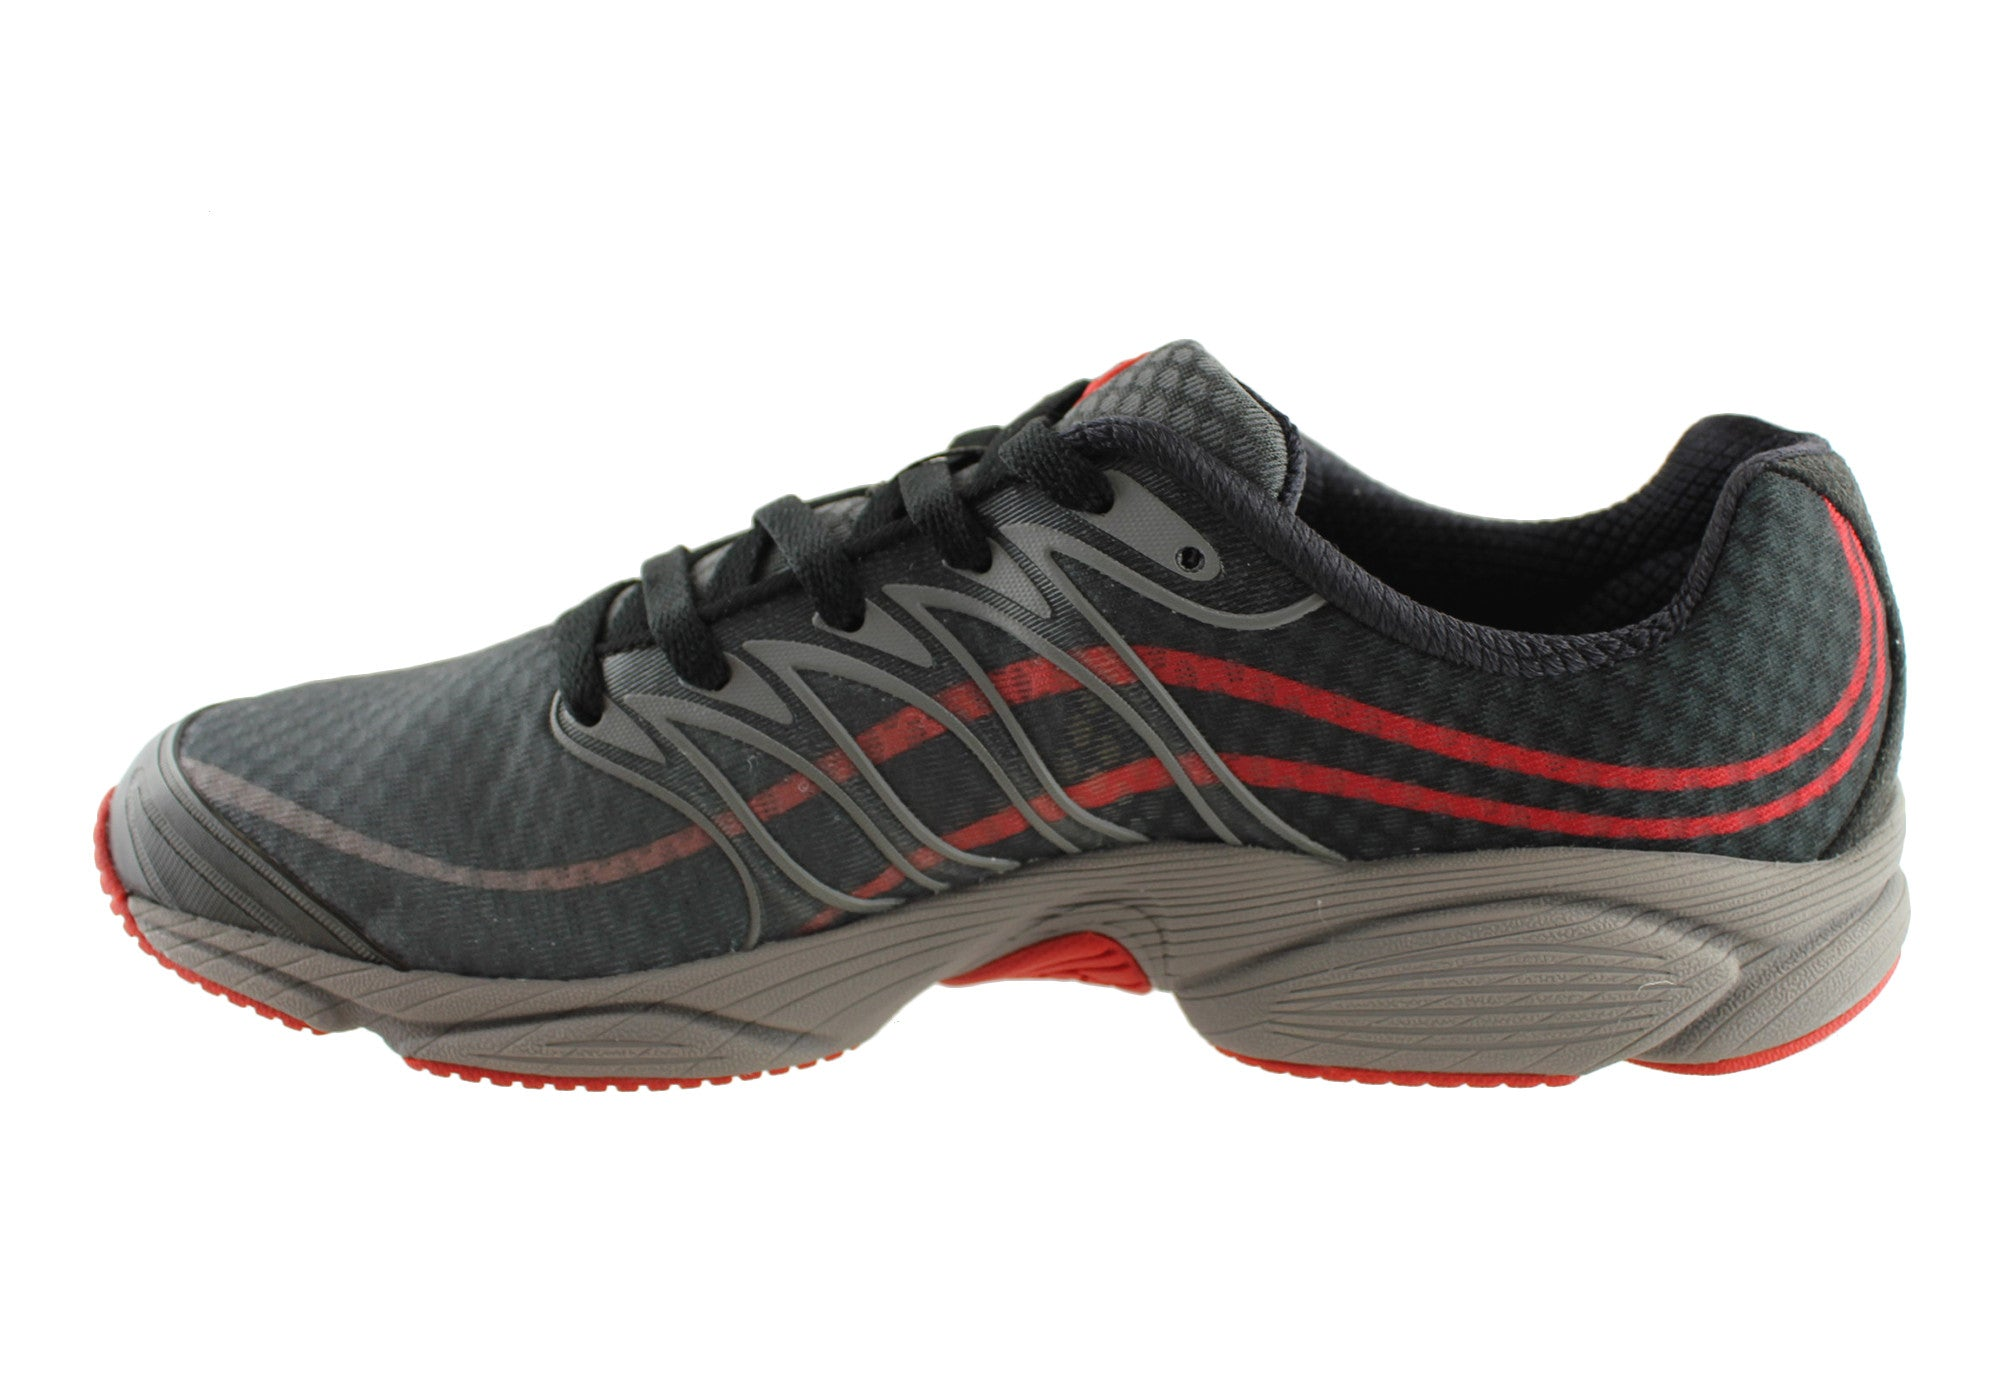 Merrell Allout Flash Mens Running Shoes